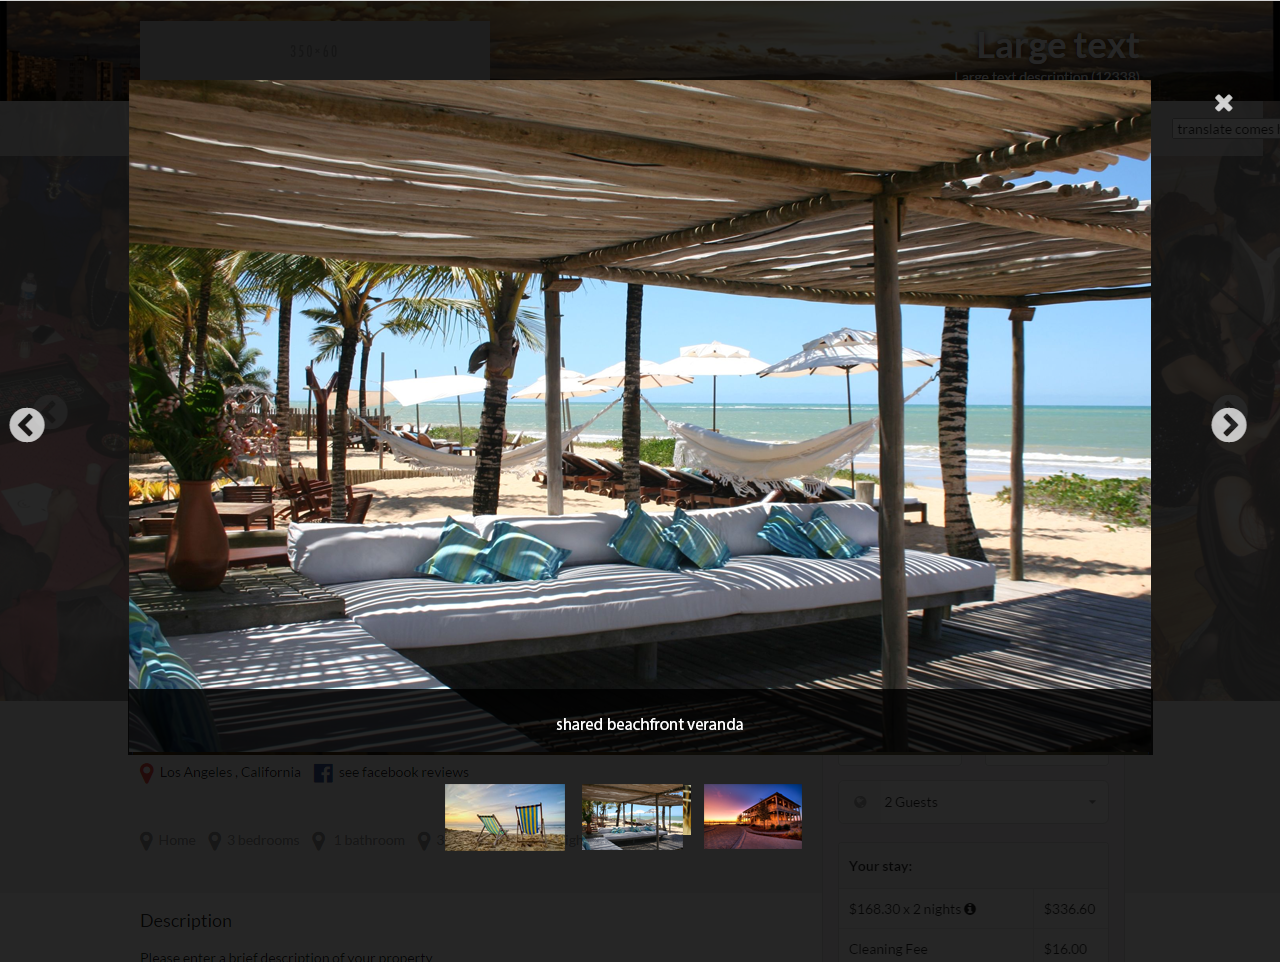 Vacation rental image gallery website